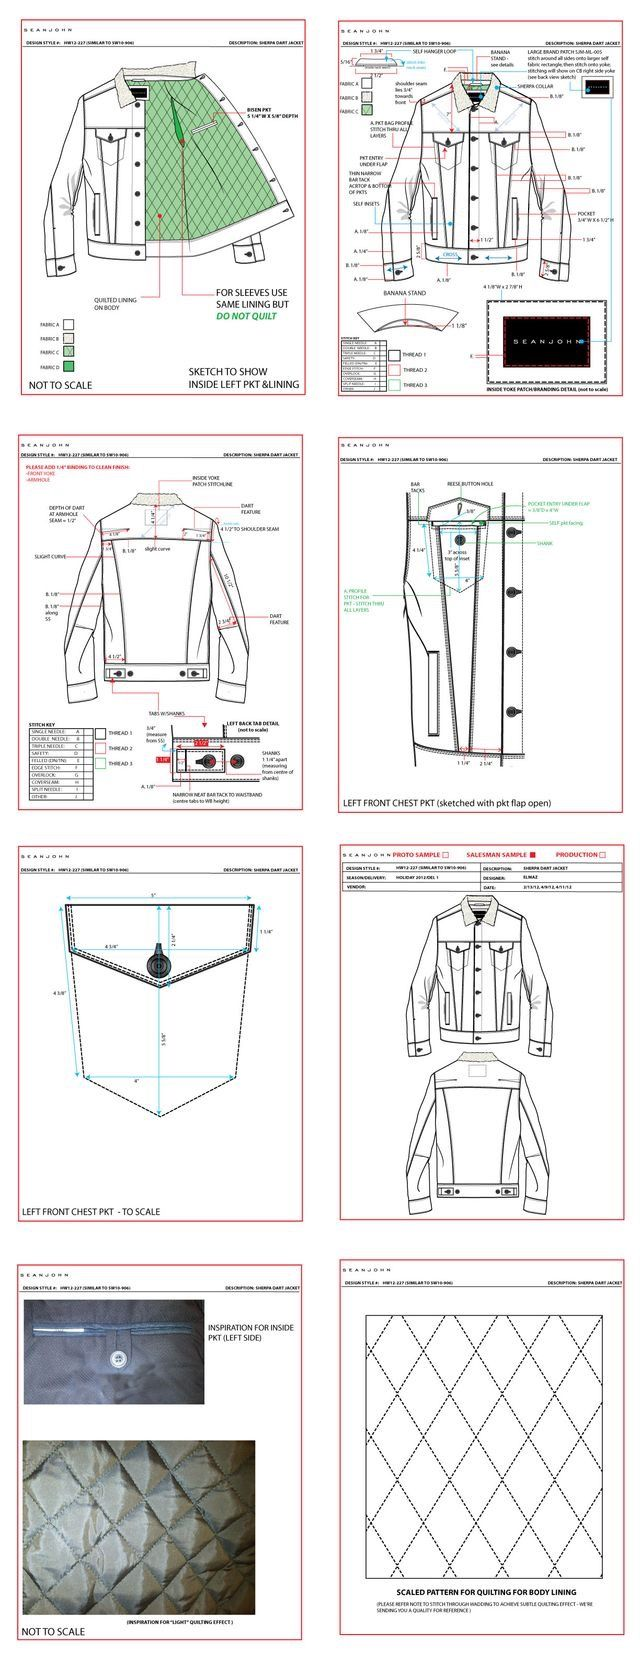 Jacket construction